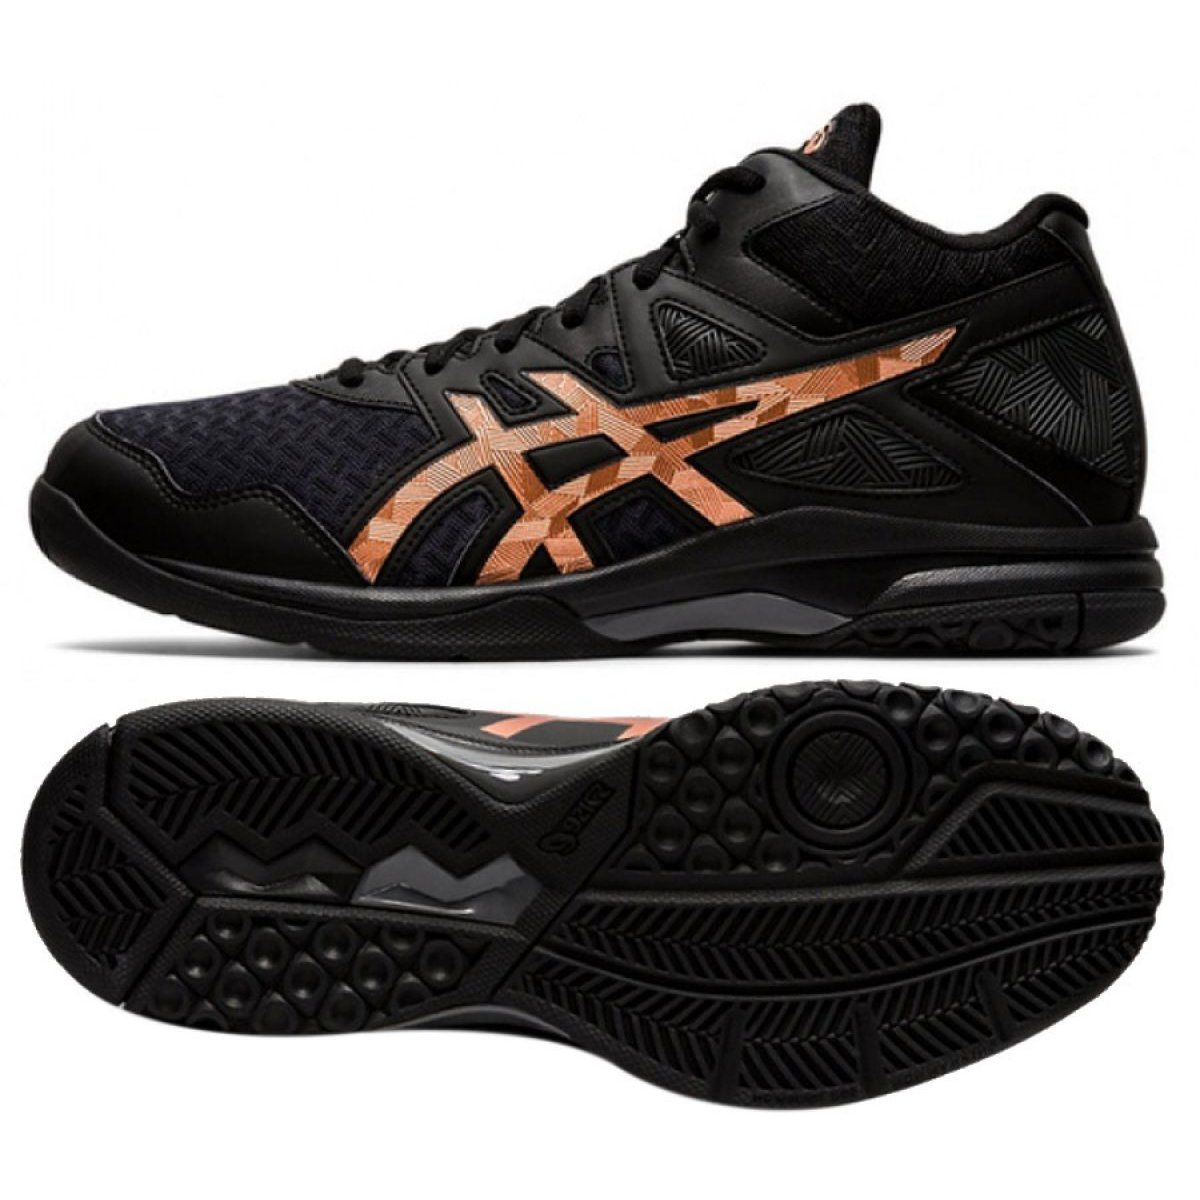 Volleyball Sport Asics Asics Gel Task Mt 2 M 1071a036 002 Shoes Black Black Asics Gel Asics Shoes